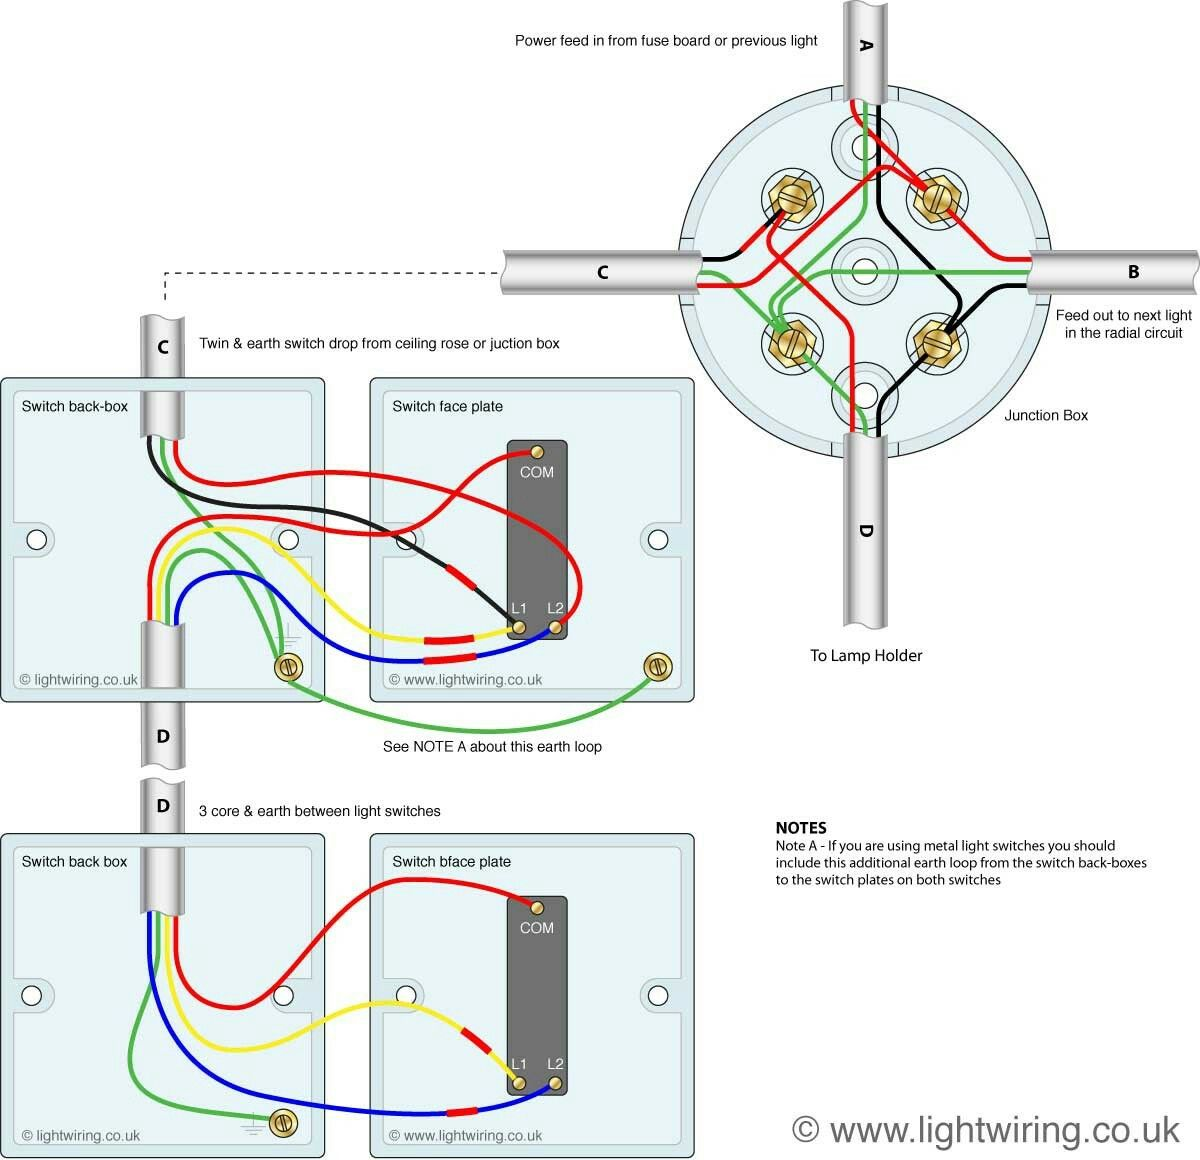 8aee225a735f907f993e88cd4b3926a9 pin by alexandre m�riguet on house electrics pinterest pool light junction box wiring diagram at reclaimingppi.co